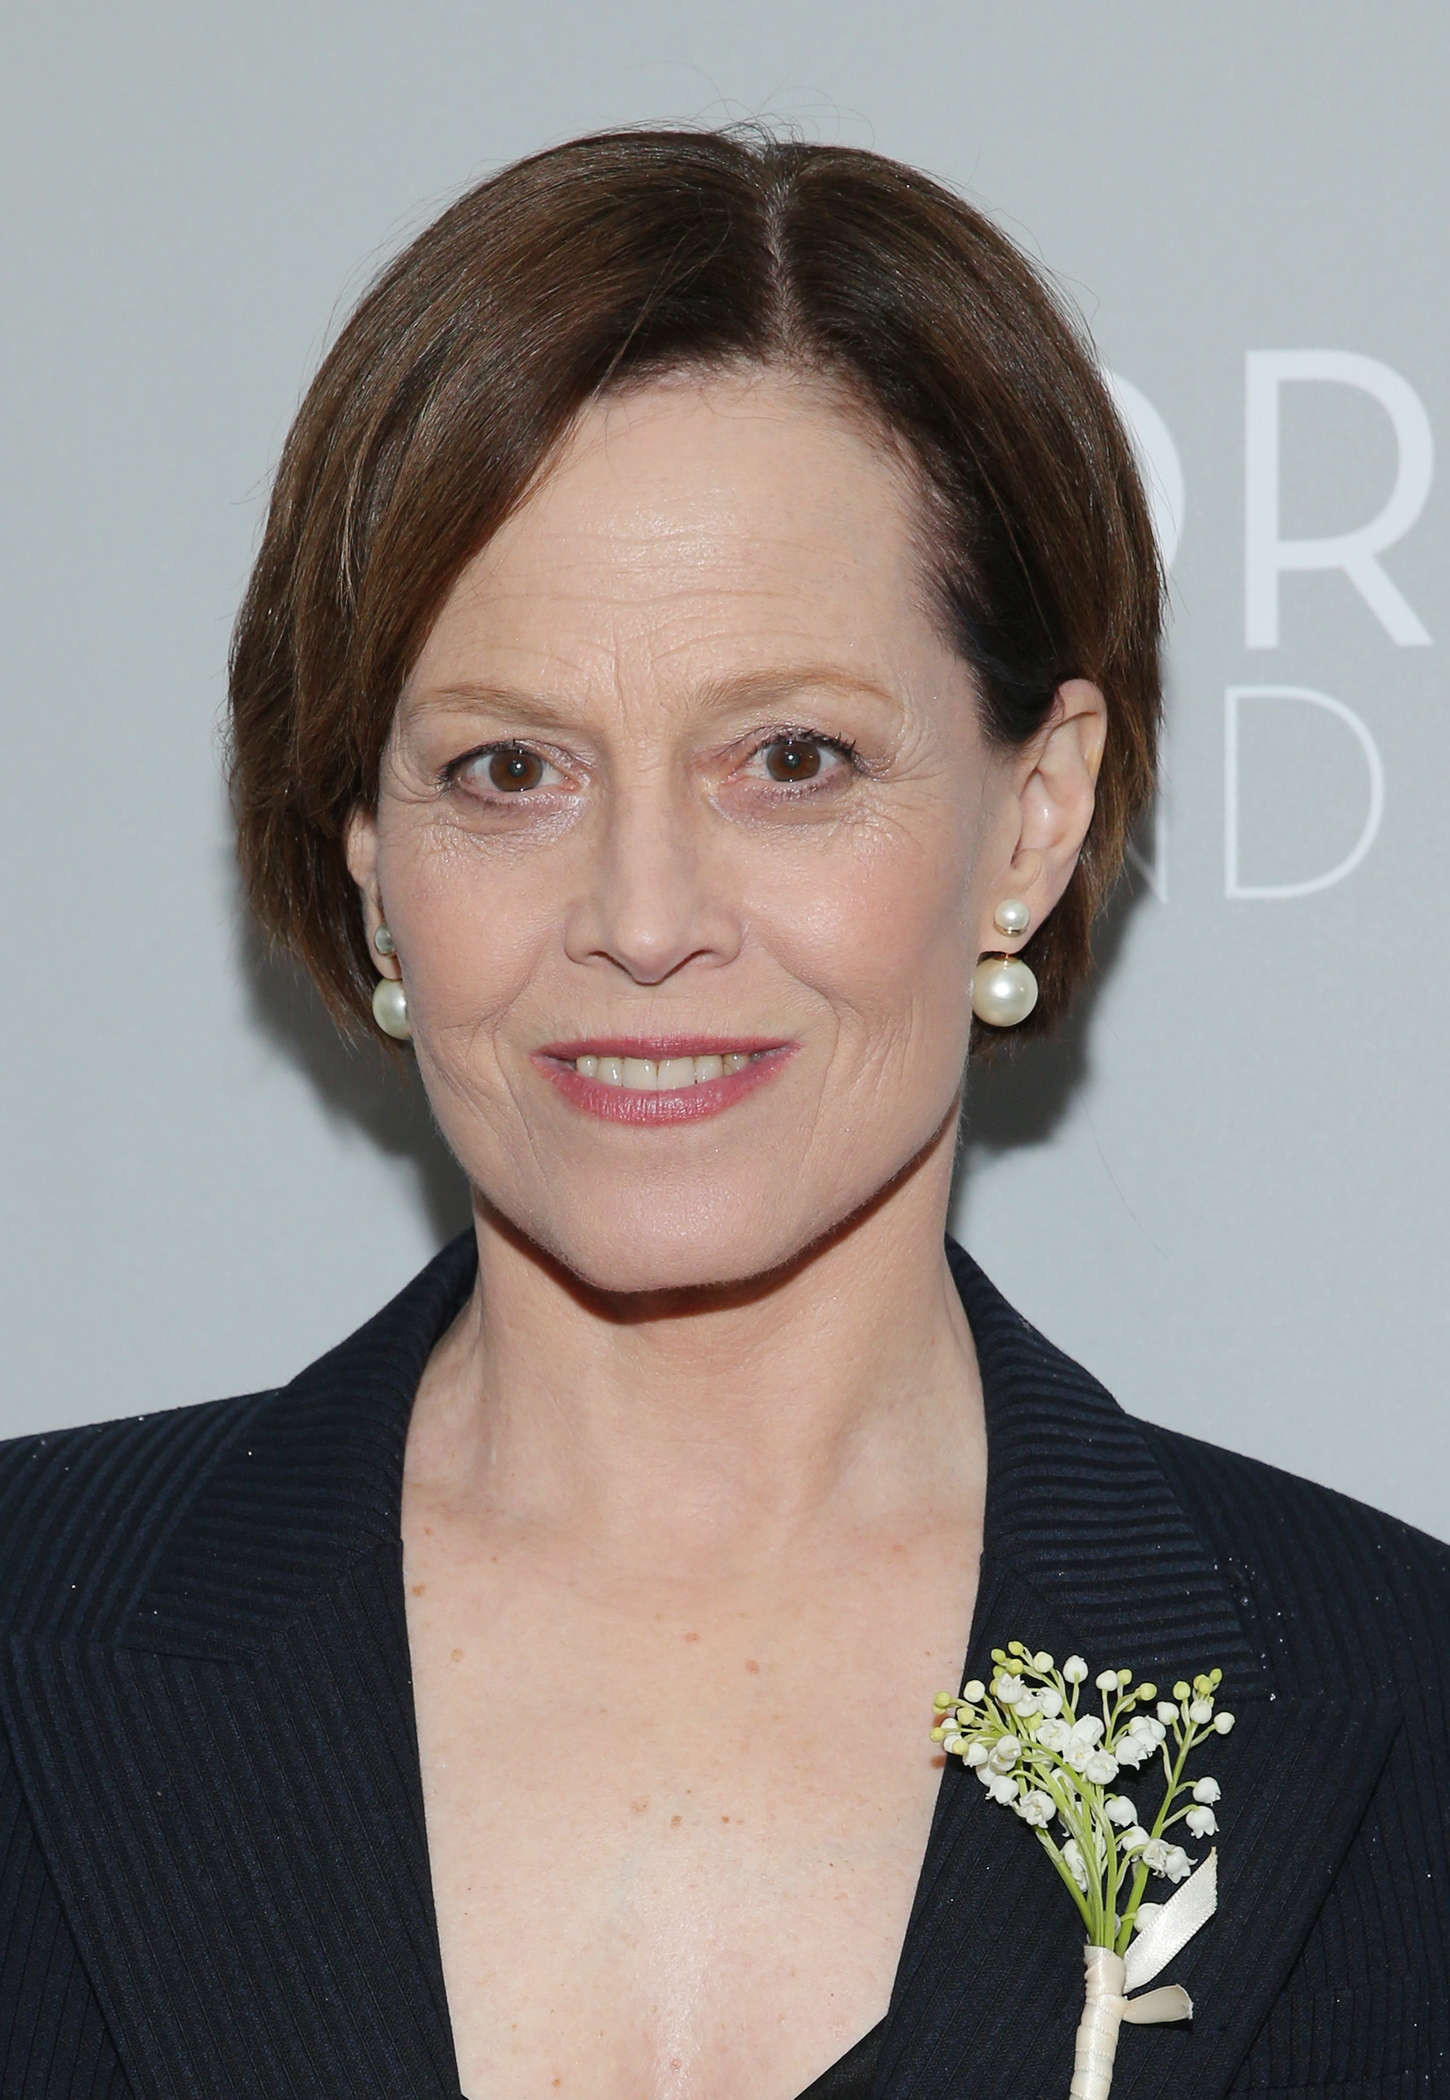 Sigourney Weaver The Orchards DIOR I Screening in New York